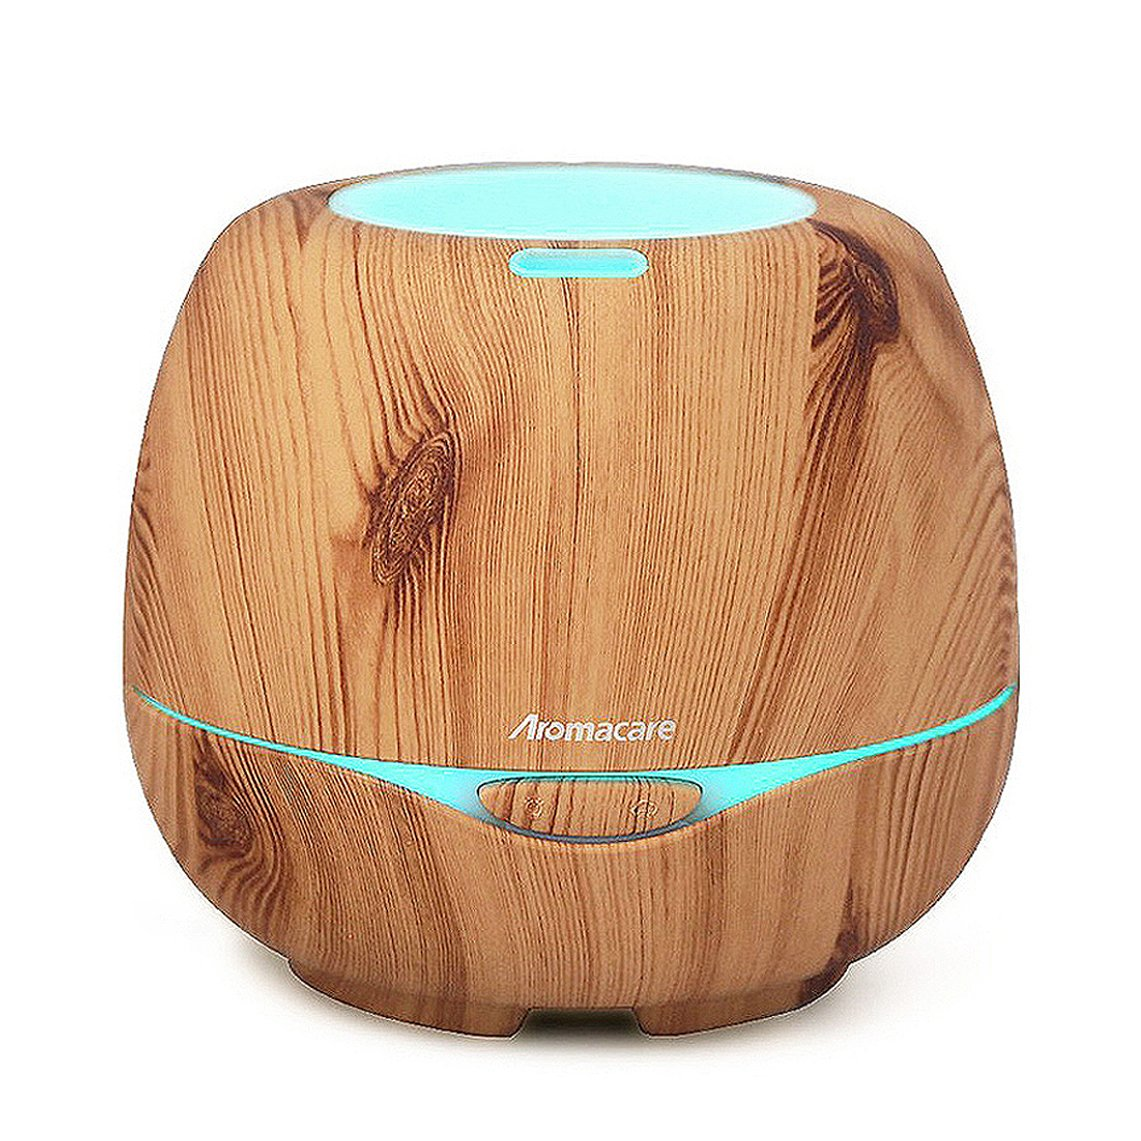 Aromacare Essential Oil Diffuser 300ML, Diffusers for Essential Oils, with Waterless Auto Shut-Off and 7 Color LED Lights, Oil Diffuser for Bedroom Office Spa - Wood Grain